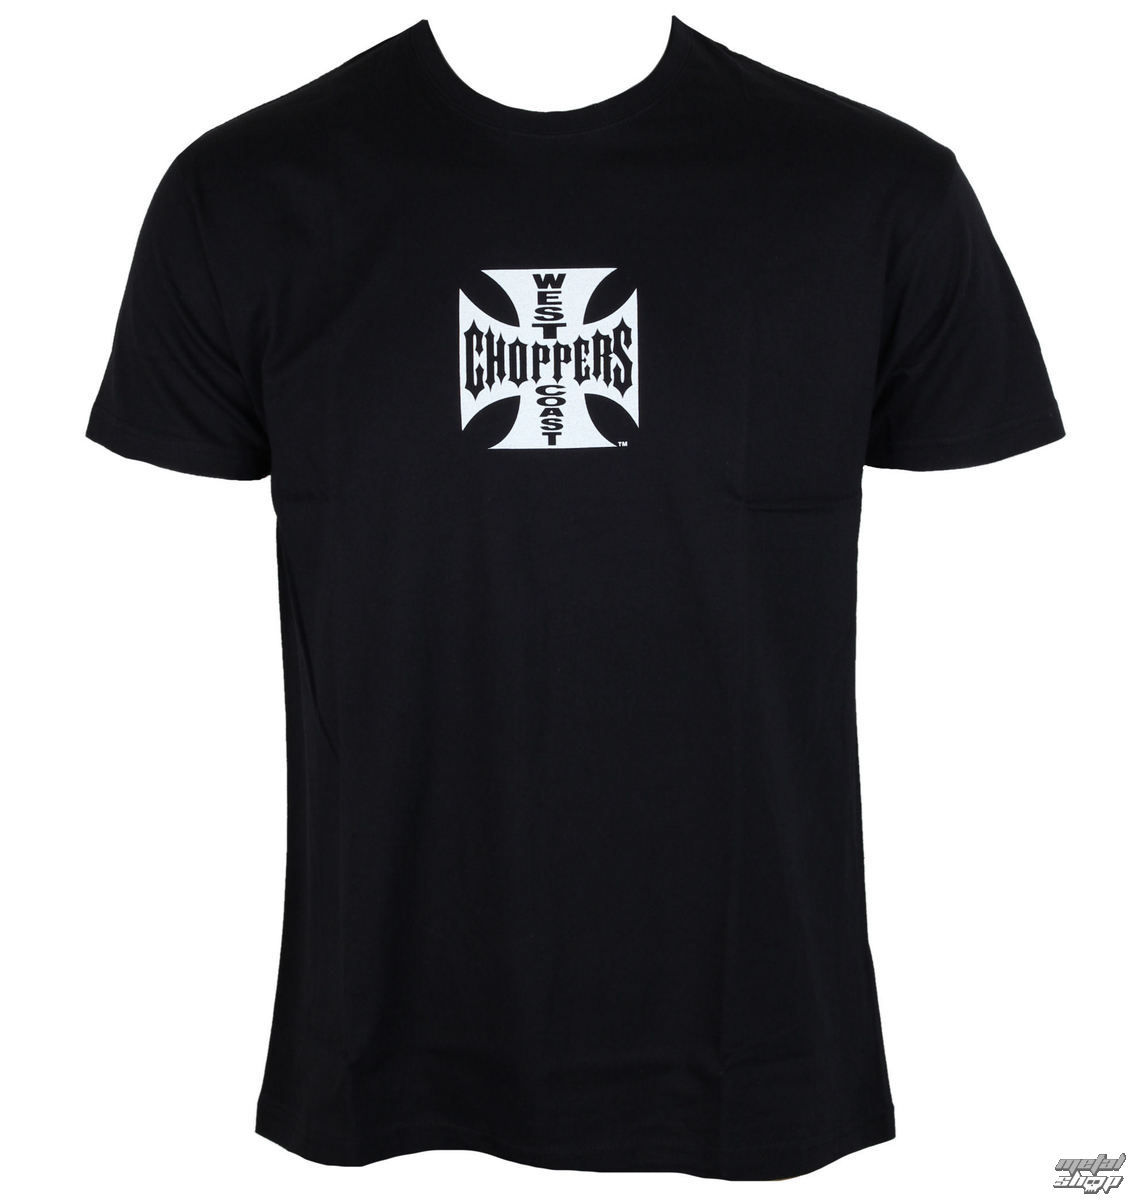 tričko West Coast Choppers Iron Cross černá 3XL